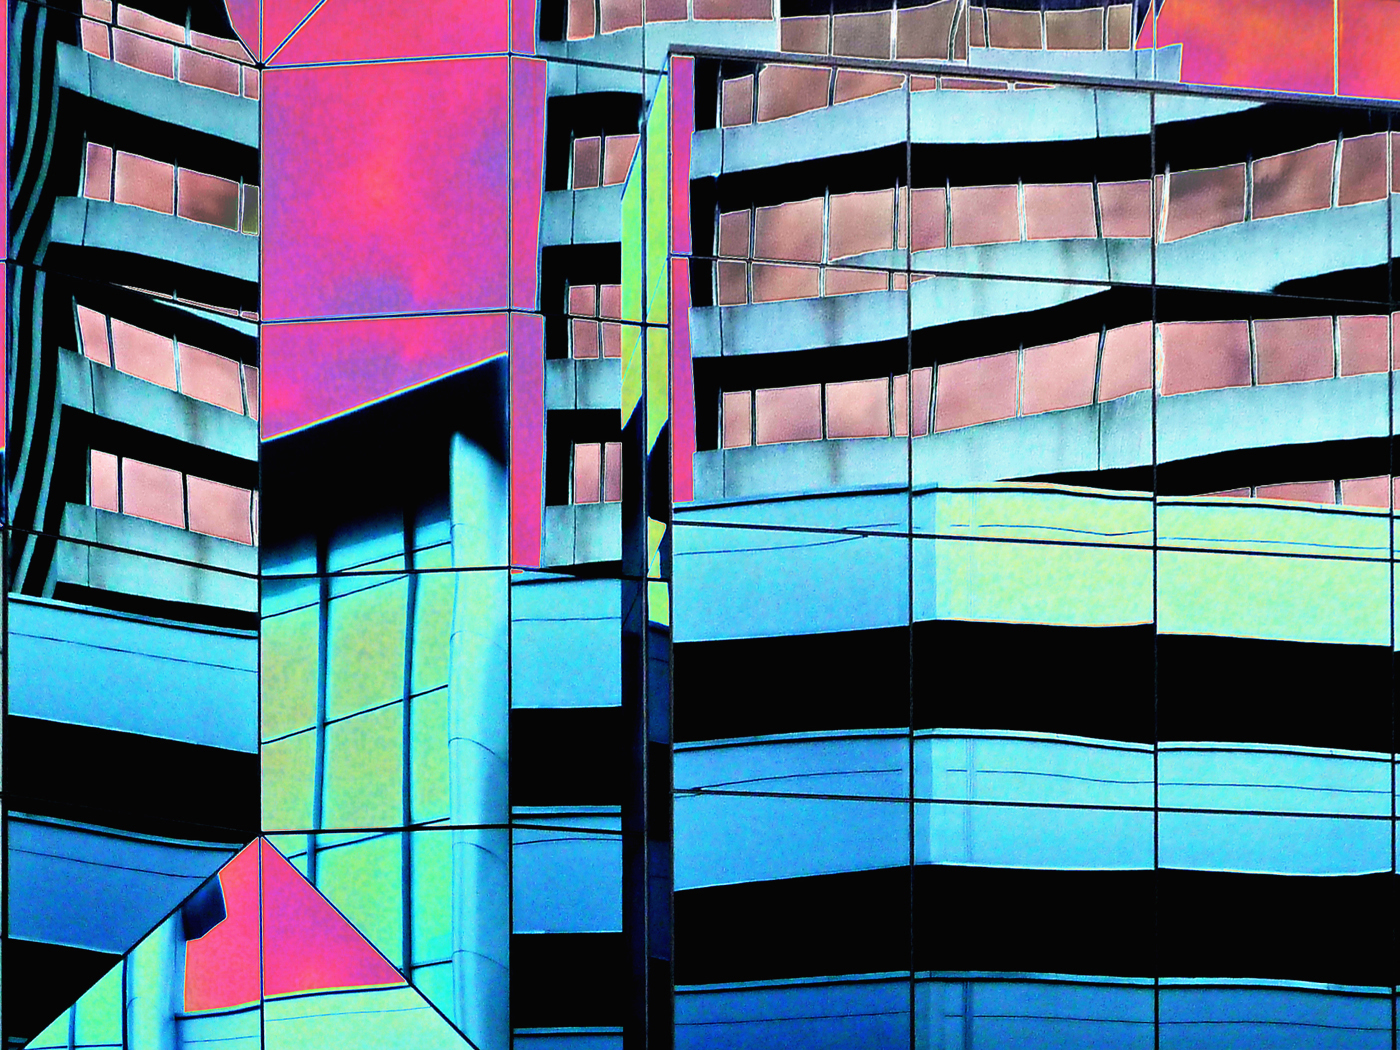 Highly Commended 'Building Blocks' by Richard Ramsay